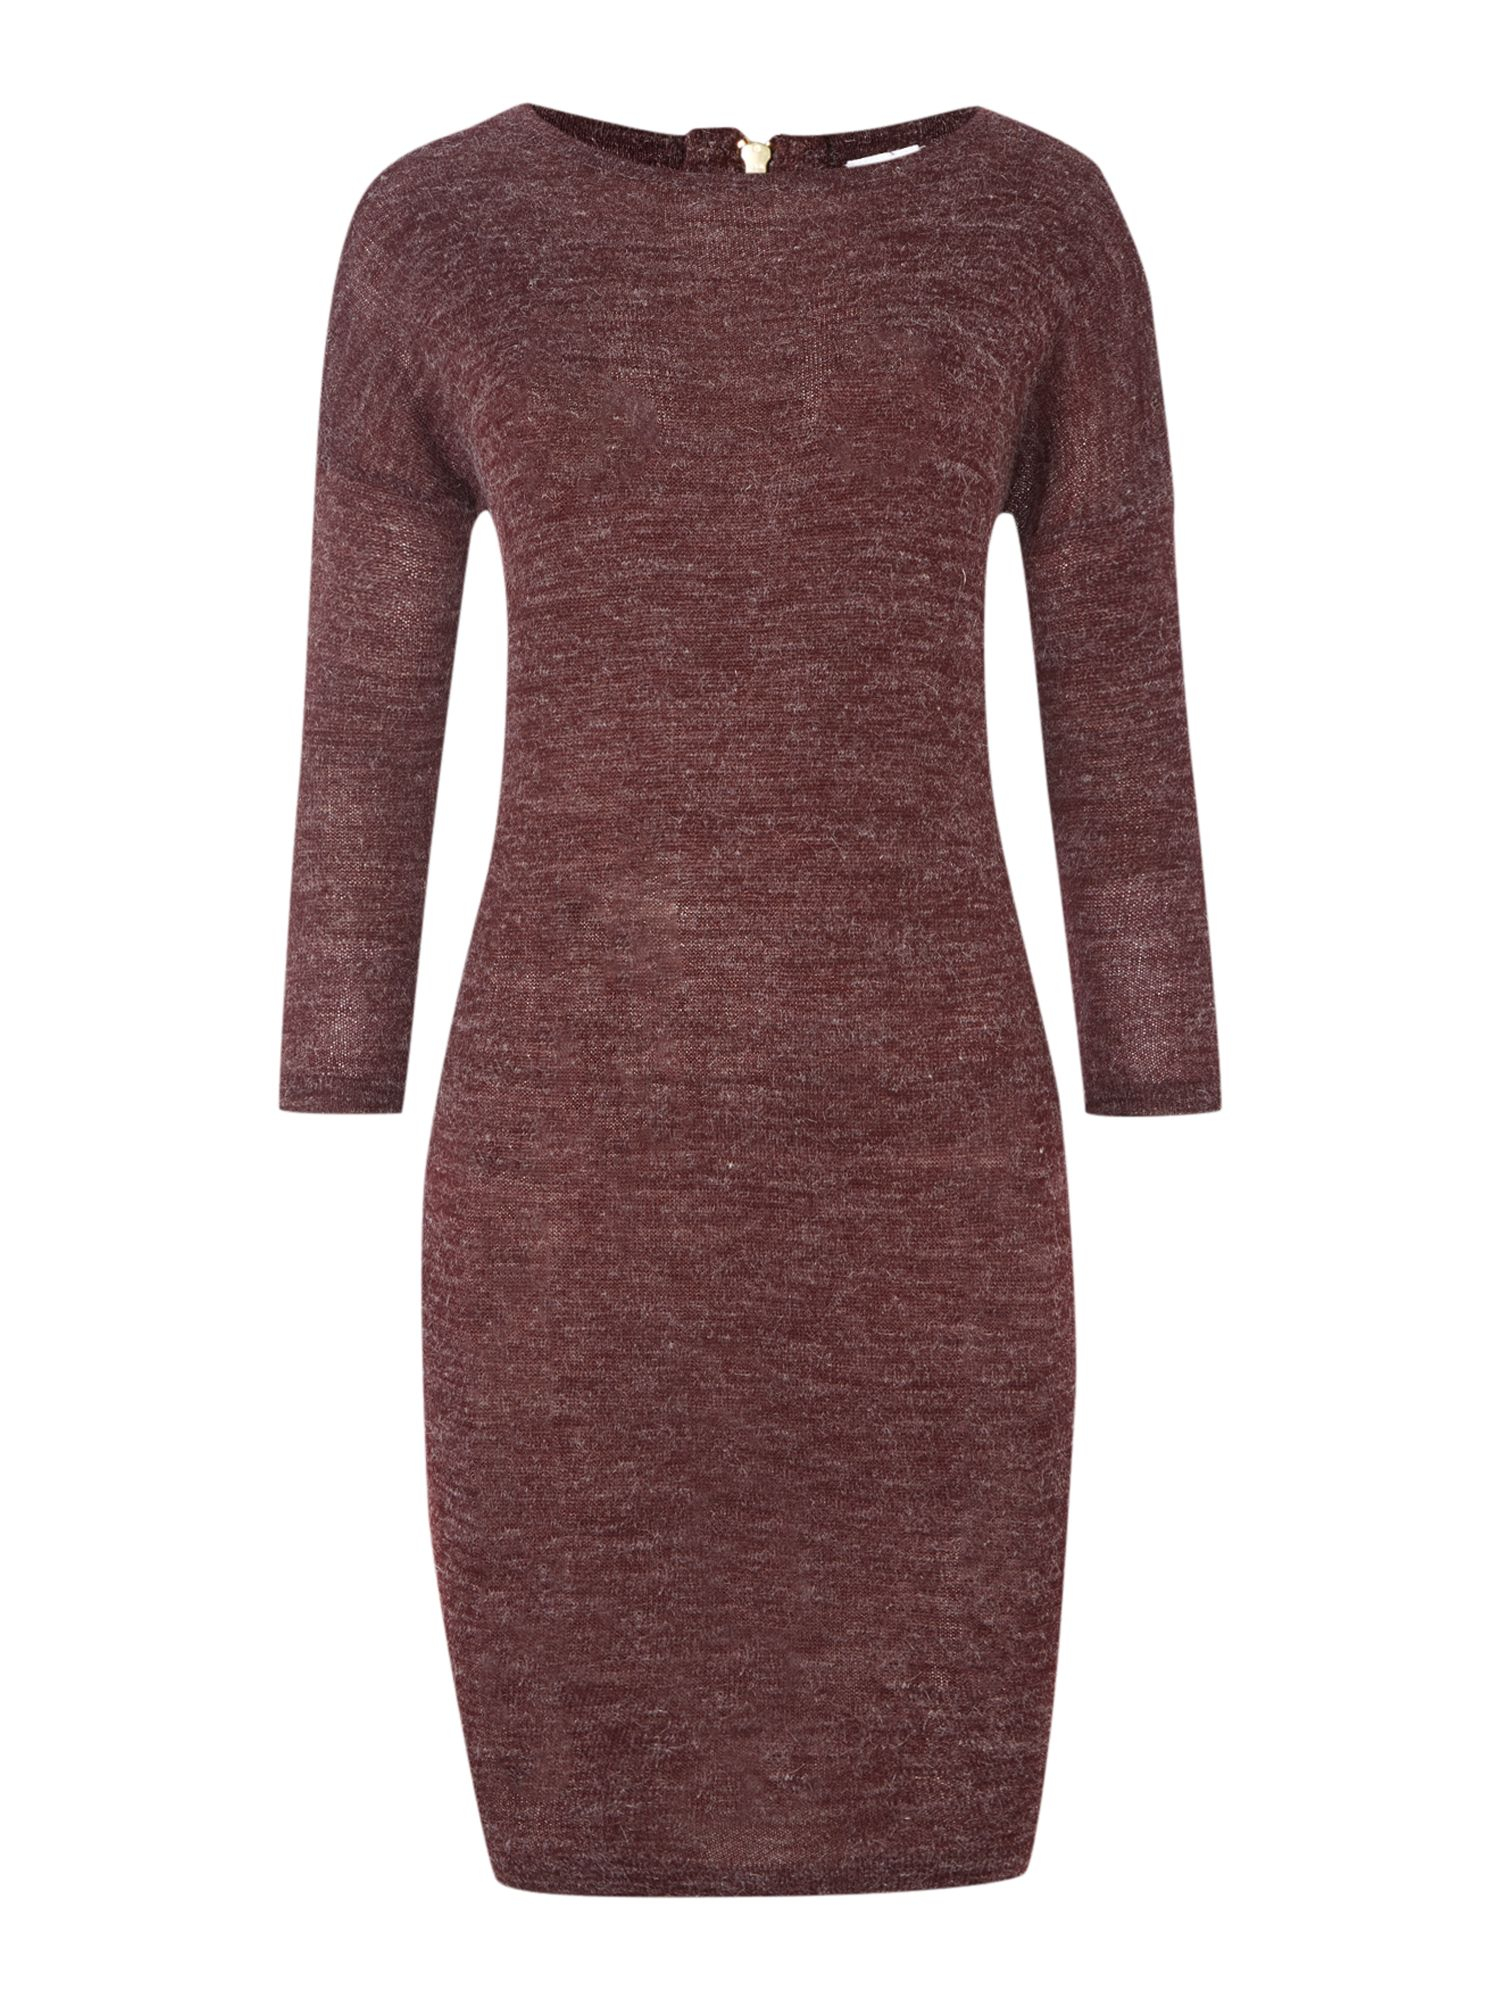 Vero Moda Knitting Yarns : Vero moda zip back knit dress in purple lyst